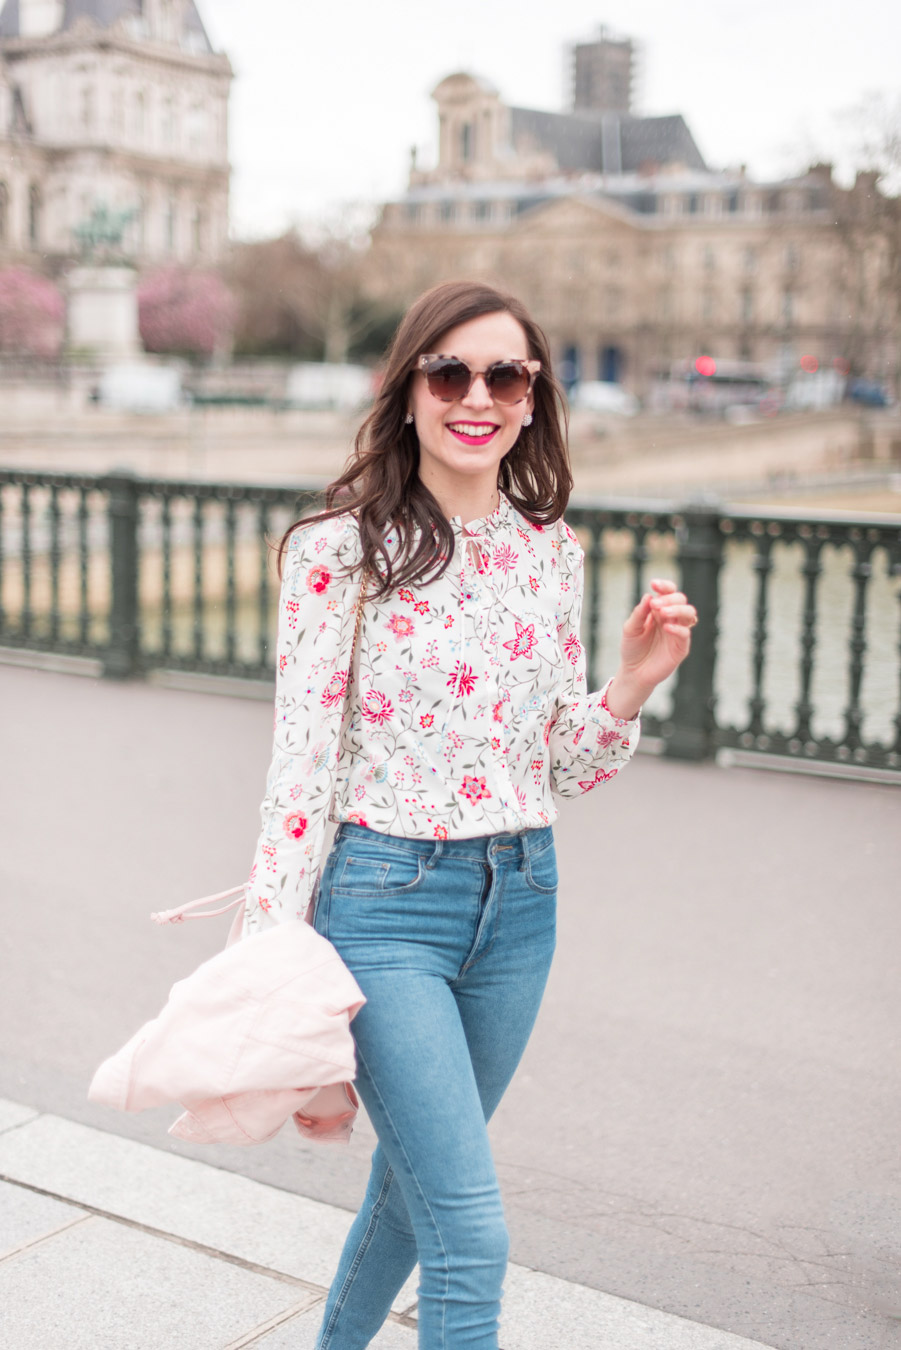 Blog-Mode-And-The-City-Looks-La-veste-en-jean-rose-parfaite-7